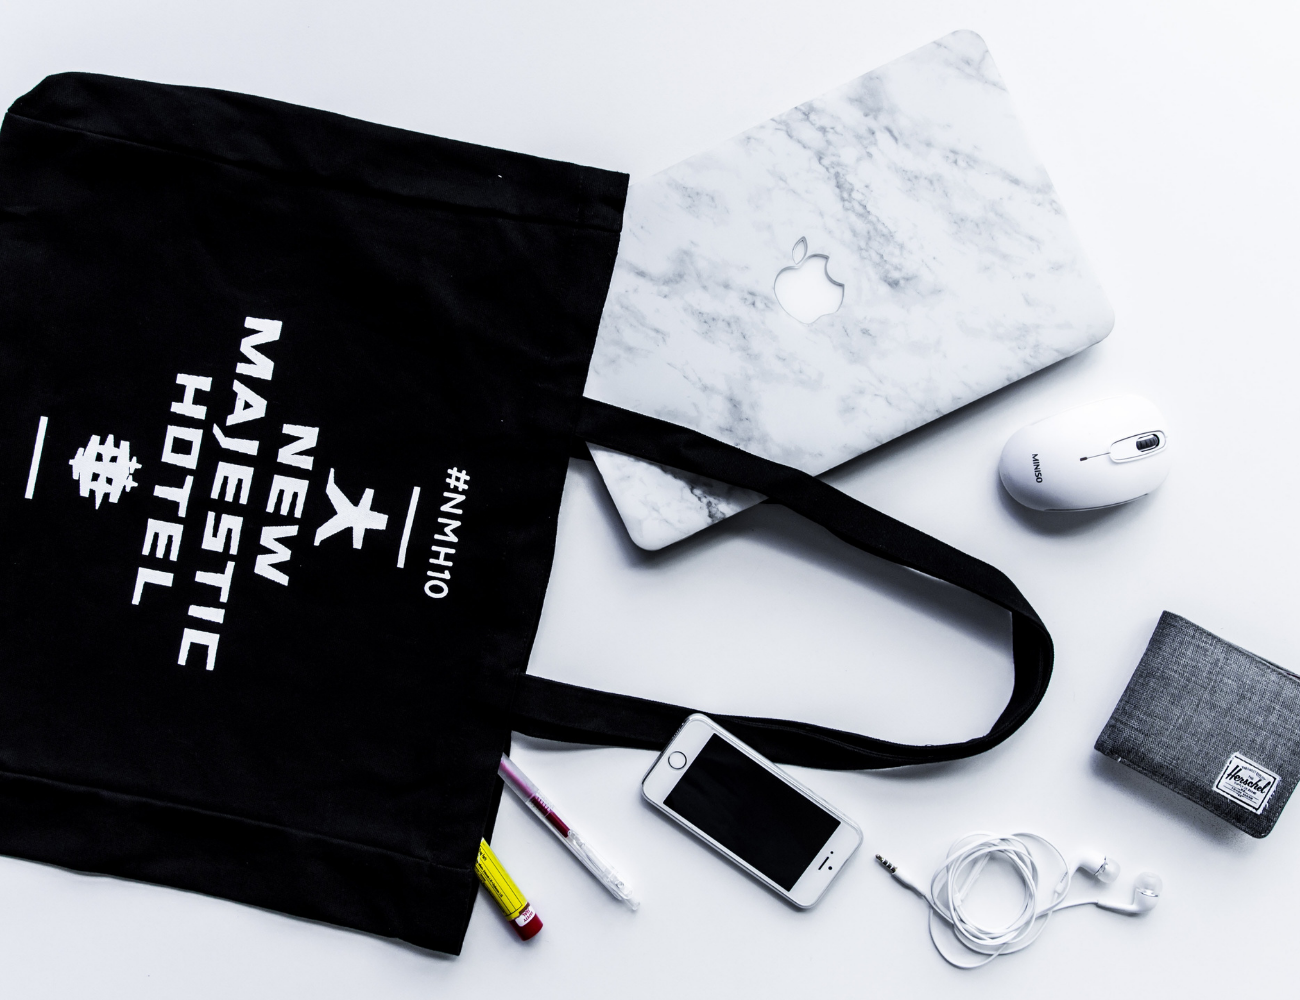 Branded merch and tote bag with laptop and electronic accessories.